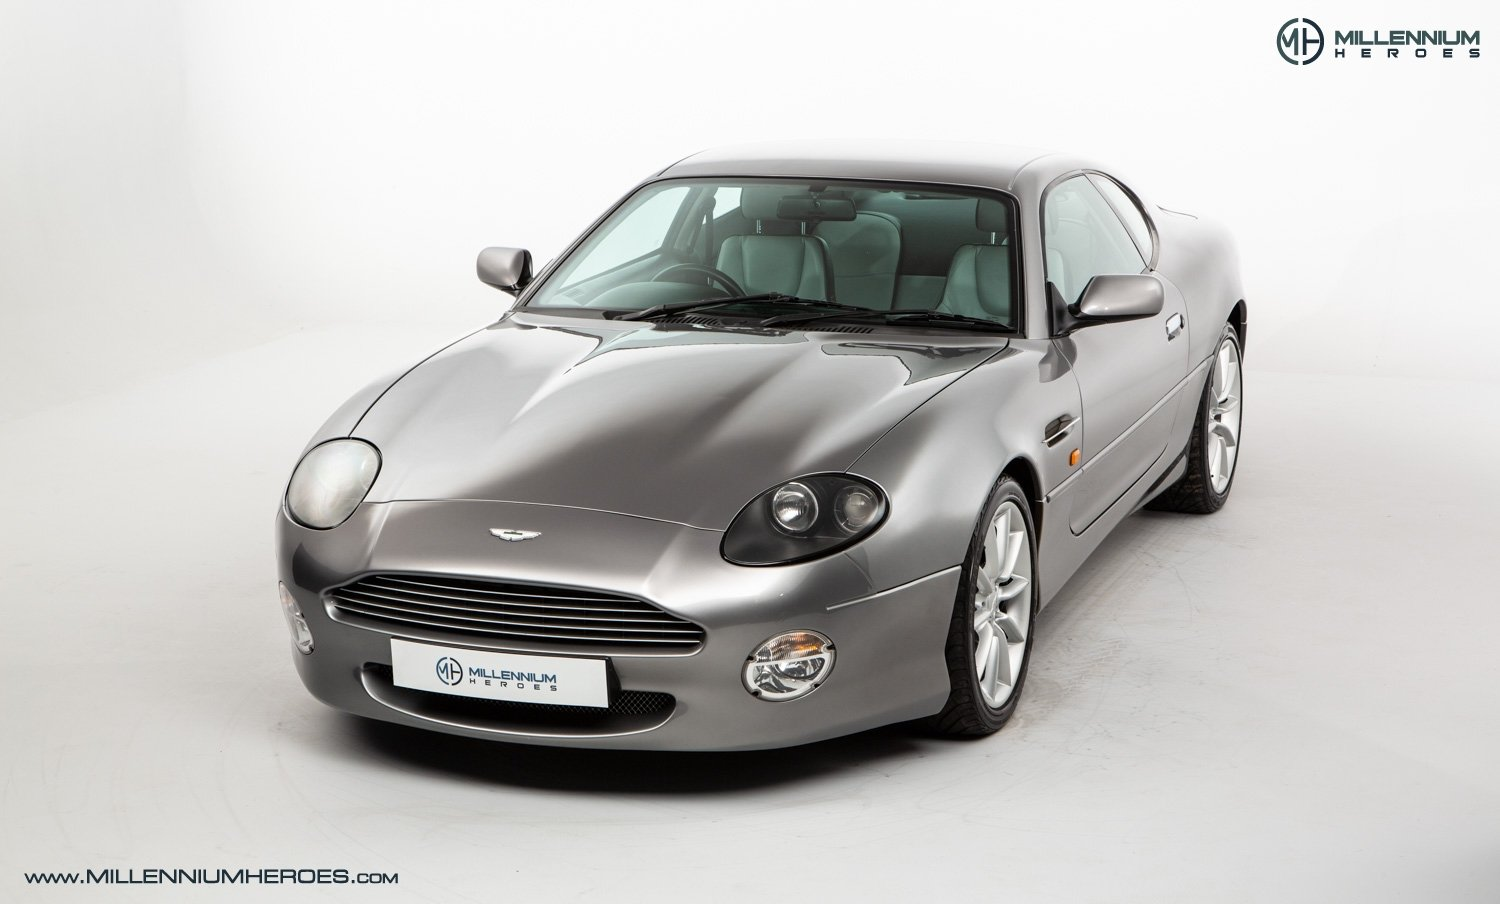 2000 ASTON MARTIN DB7 5.9 VANTAGE  For Sale (picture 2 of 24)